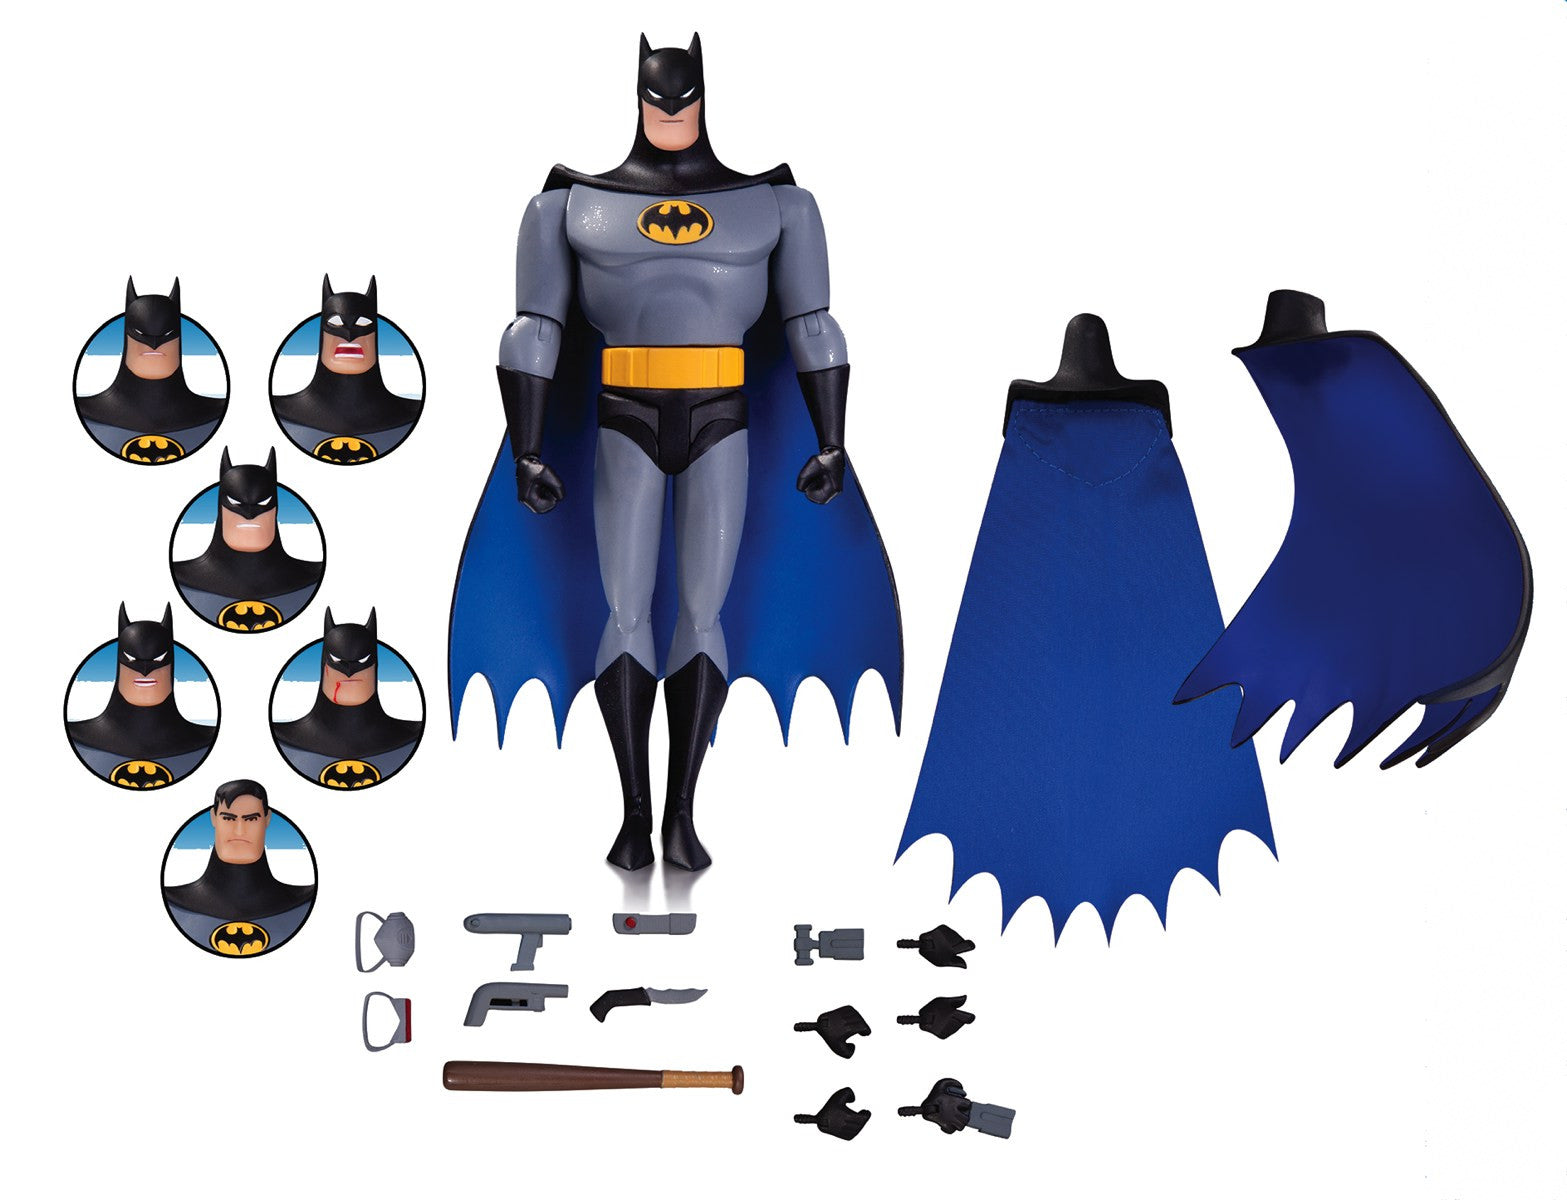 Batman Animated Series: Batman Expressions Pack DC Collectibles -DC Collectibles - India - www.superherotoystore.com